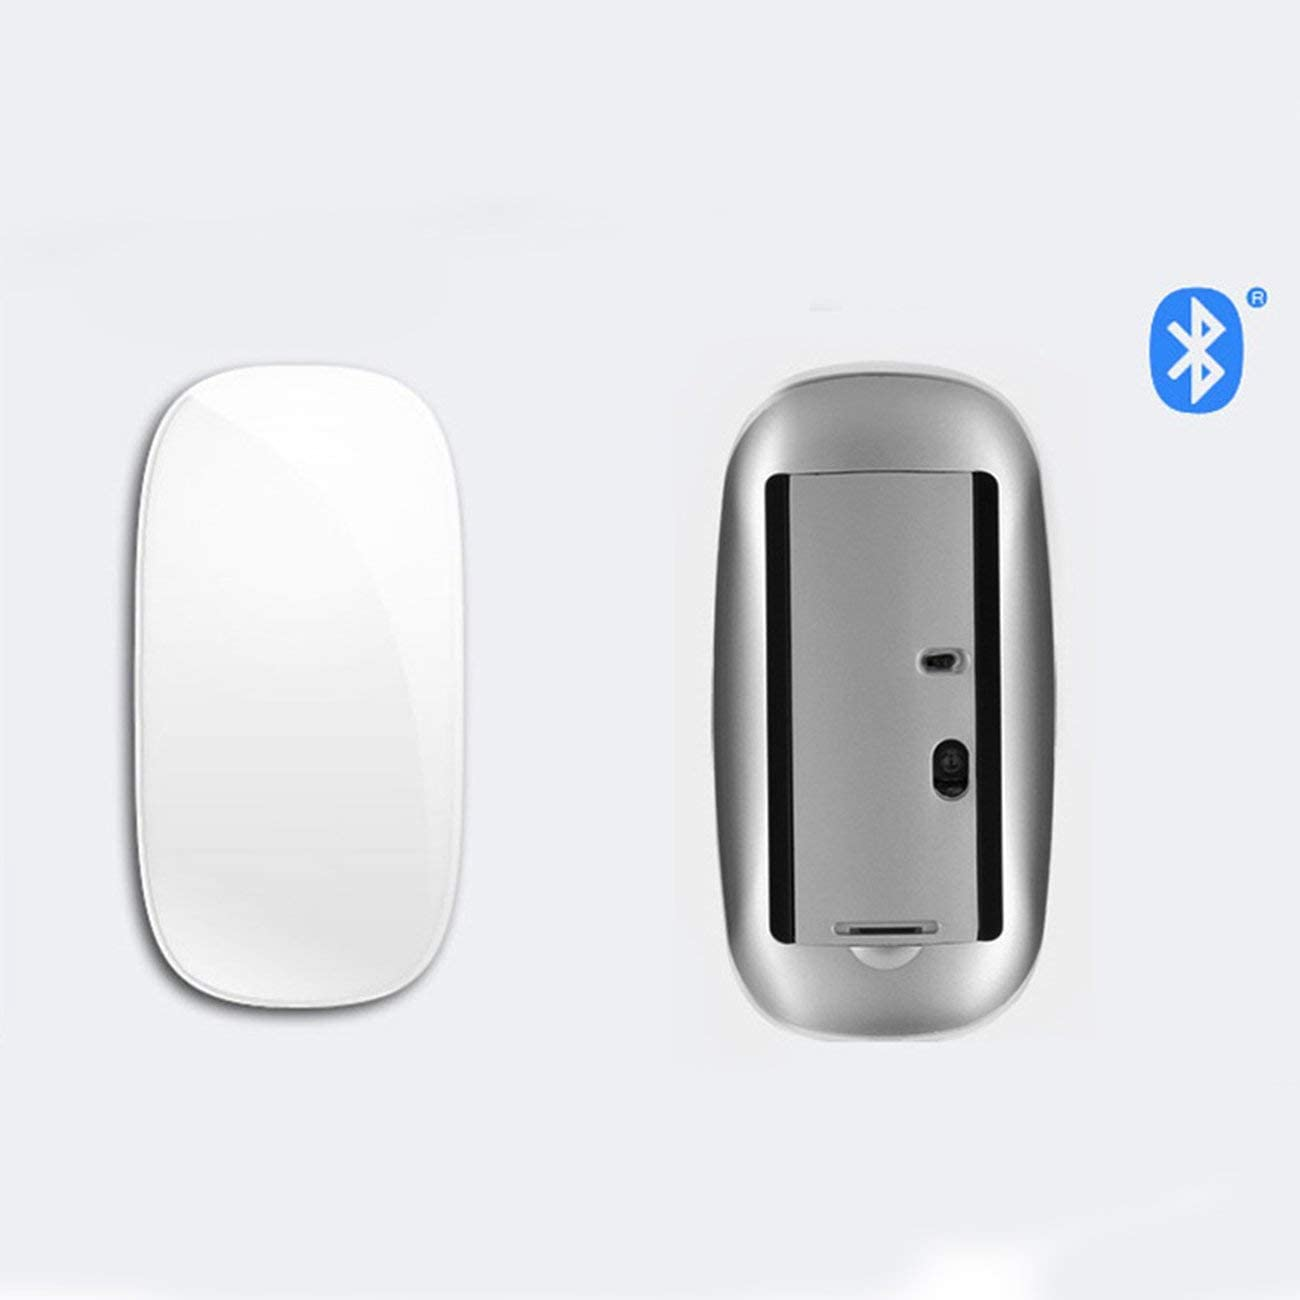 White/&Bluetooth Wireless Mouse for Mac Book Air for Mac Pro Ergonomic Design Multi Touch Rechargeable Mouse Computer Peripherals